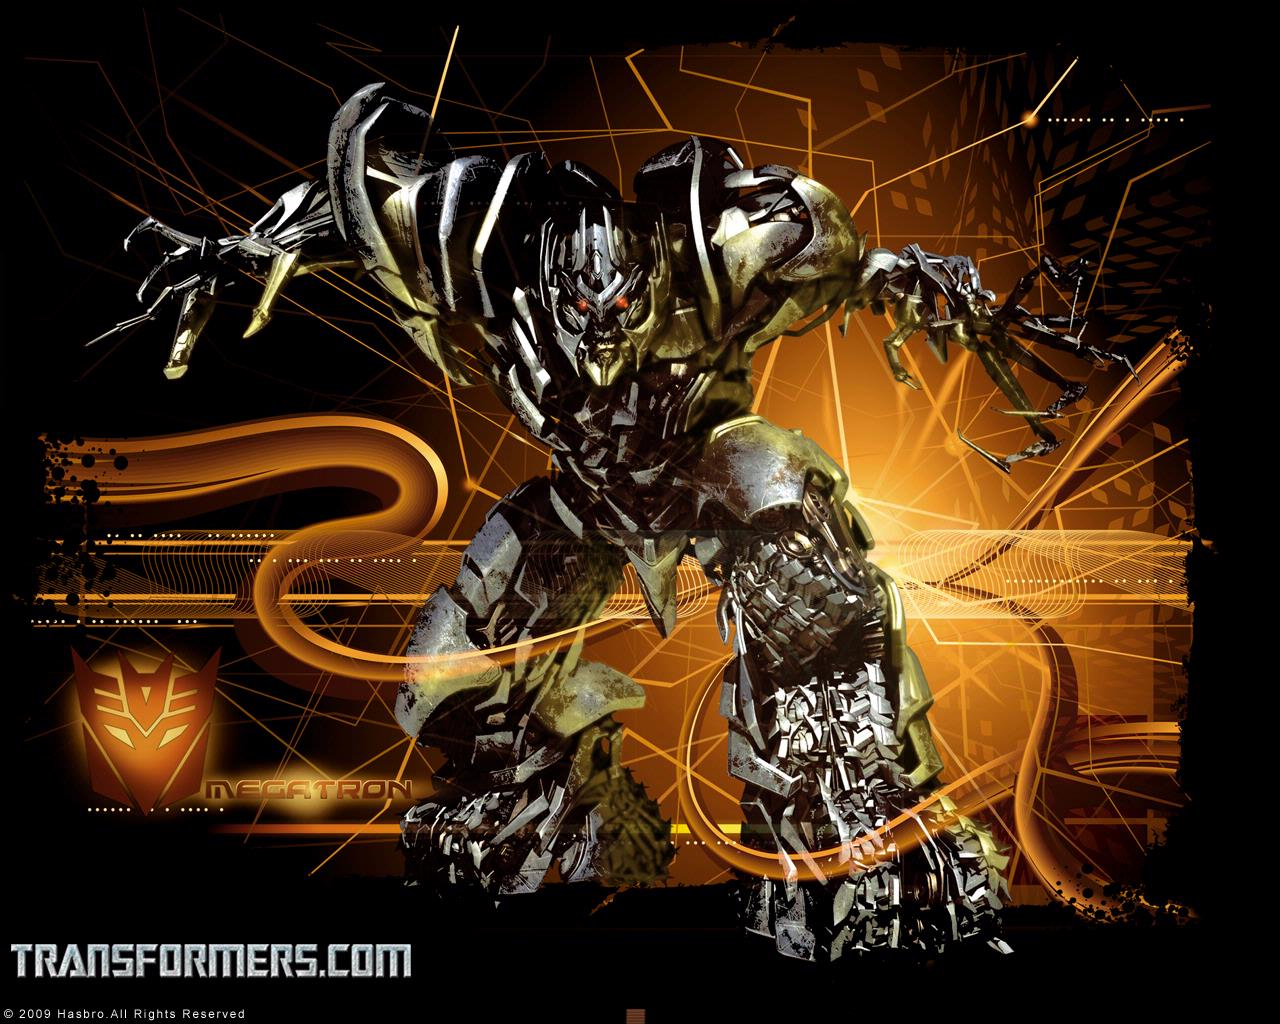 Transformers Movie Wallpaper Posted By Ryan Thompson